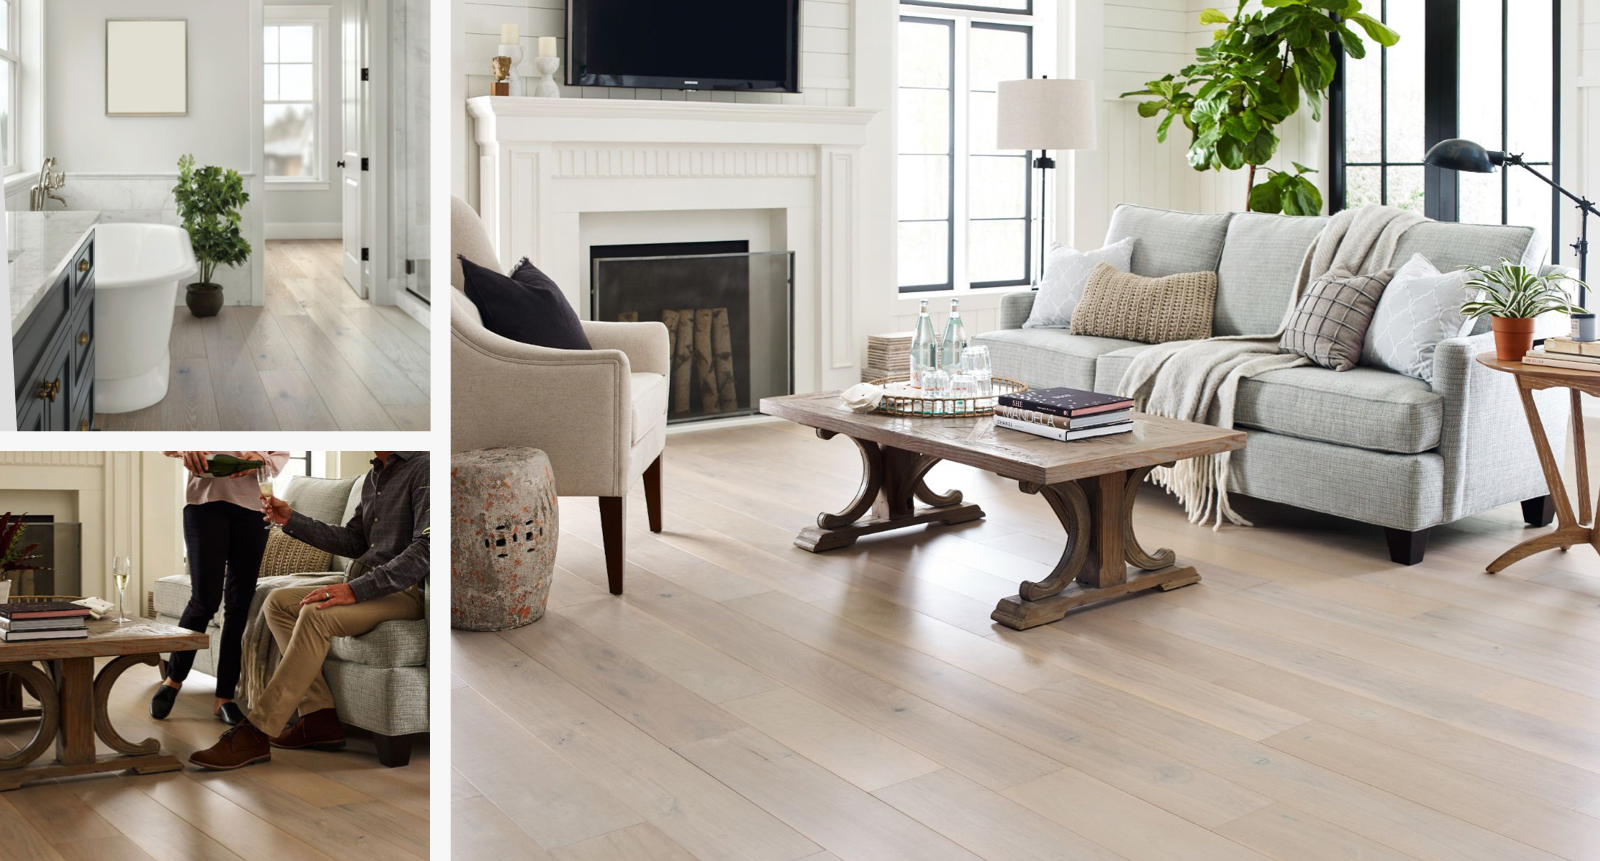 Floorte waterproof hardwood flooring for your home | The Floor Fashion Centre